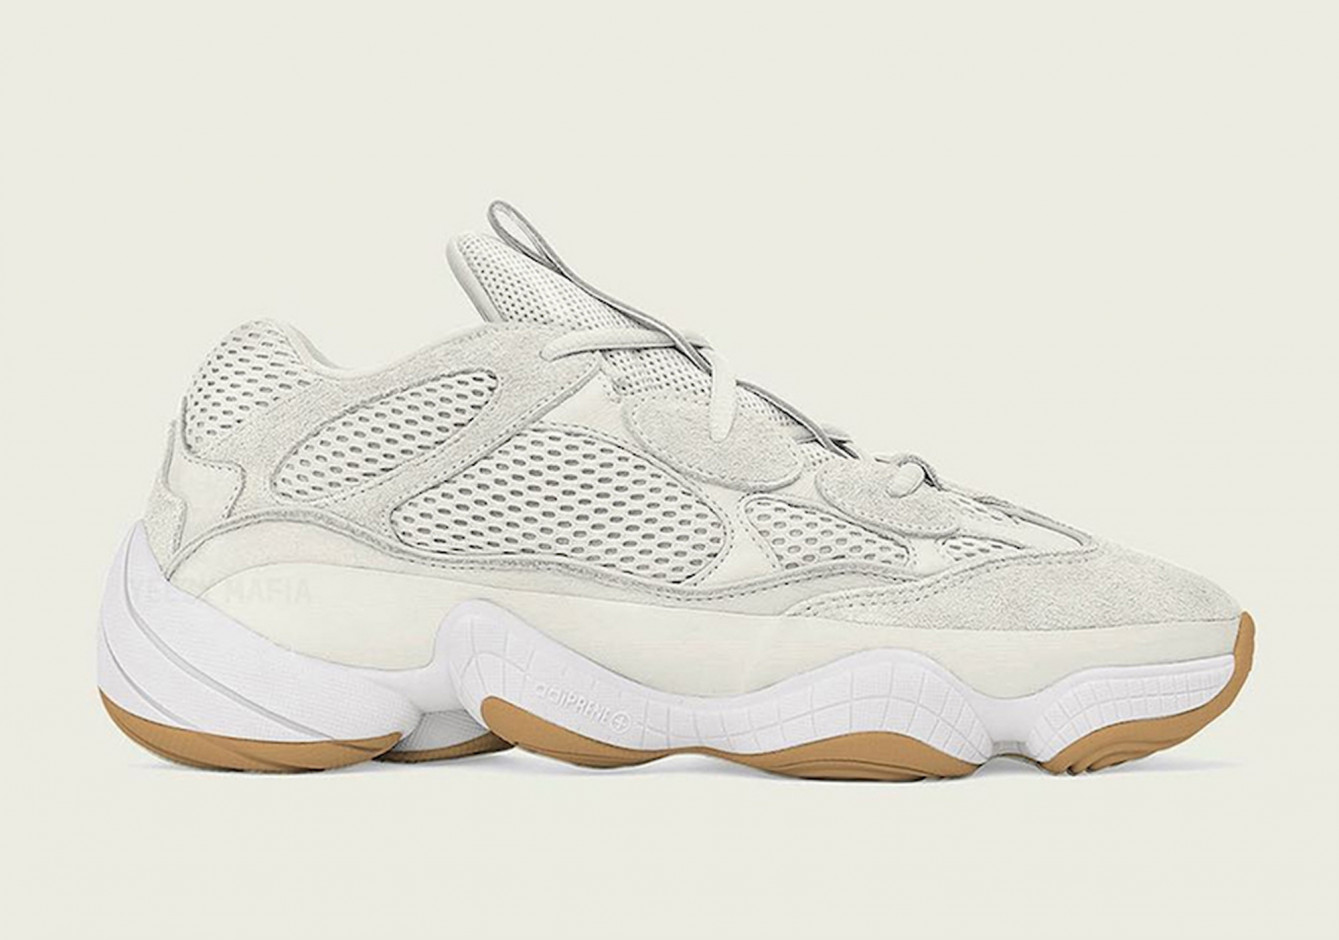 shoes releasing in august 2019